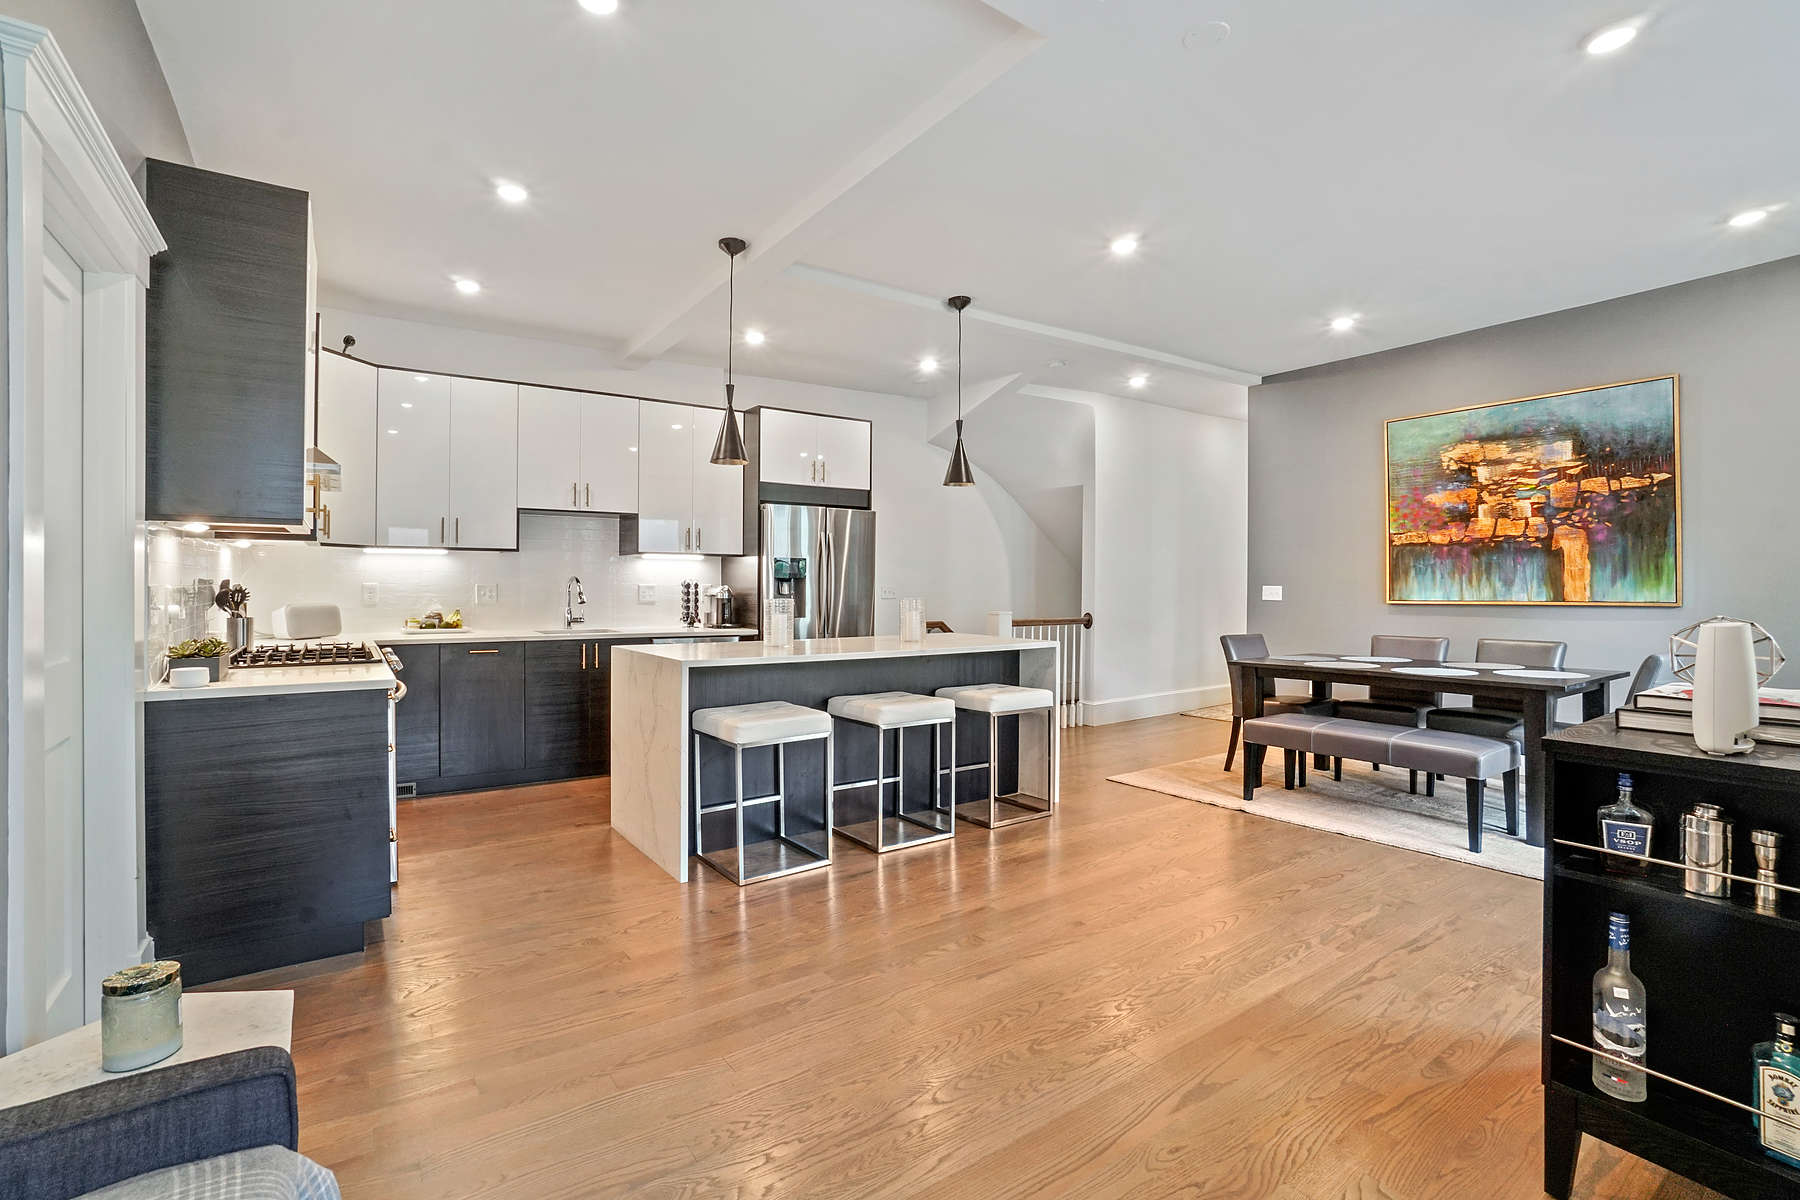 Condominiums for Sale at 20 Lincoln Street, Unit 1 20 Lincoln St 1 Somerville, Massachusetts 02145 United States